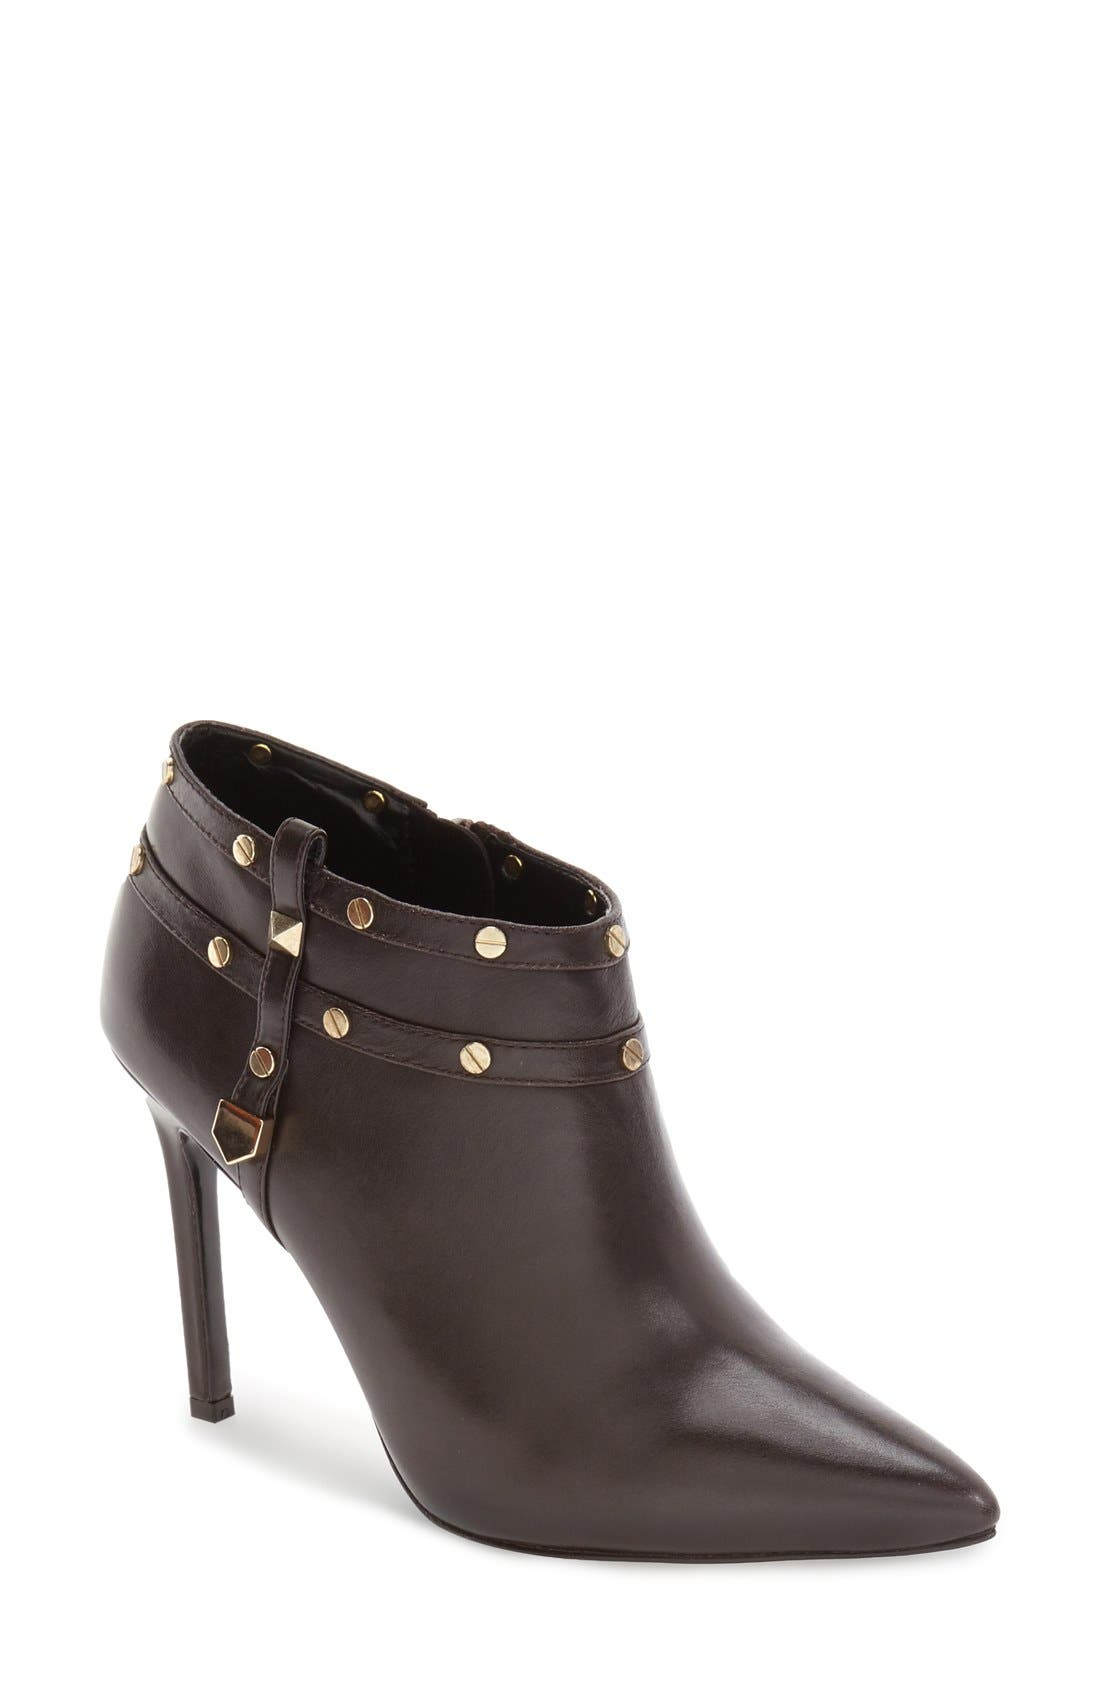 Alternate Image 1 Selected - Charles David 'Cathy' Pointy Toe Bootie (Women)